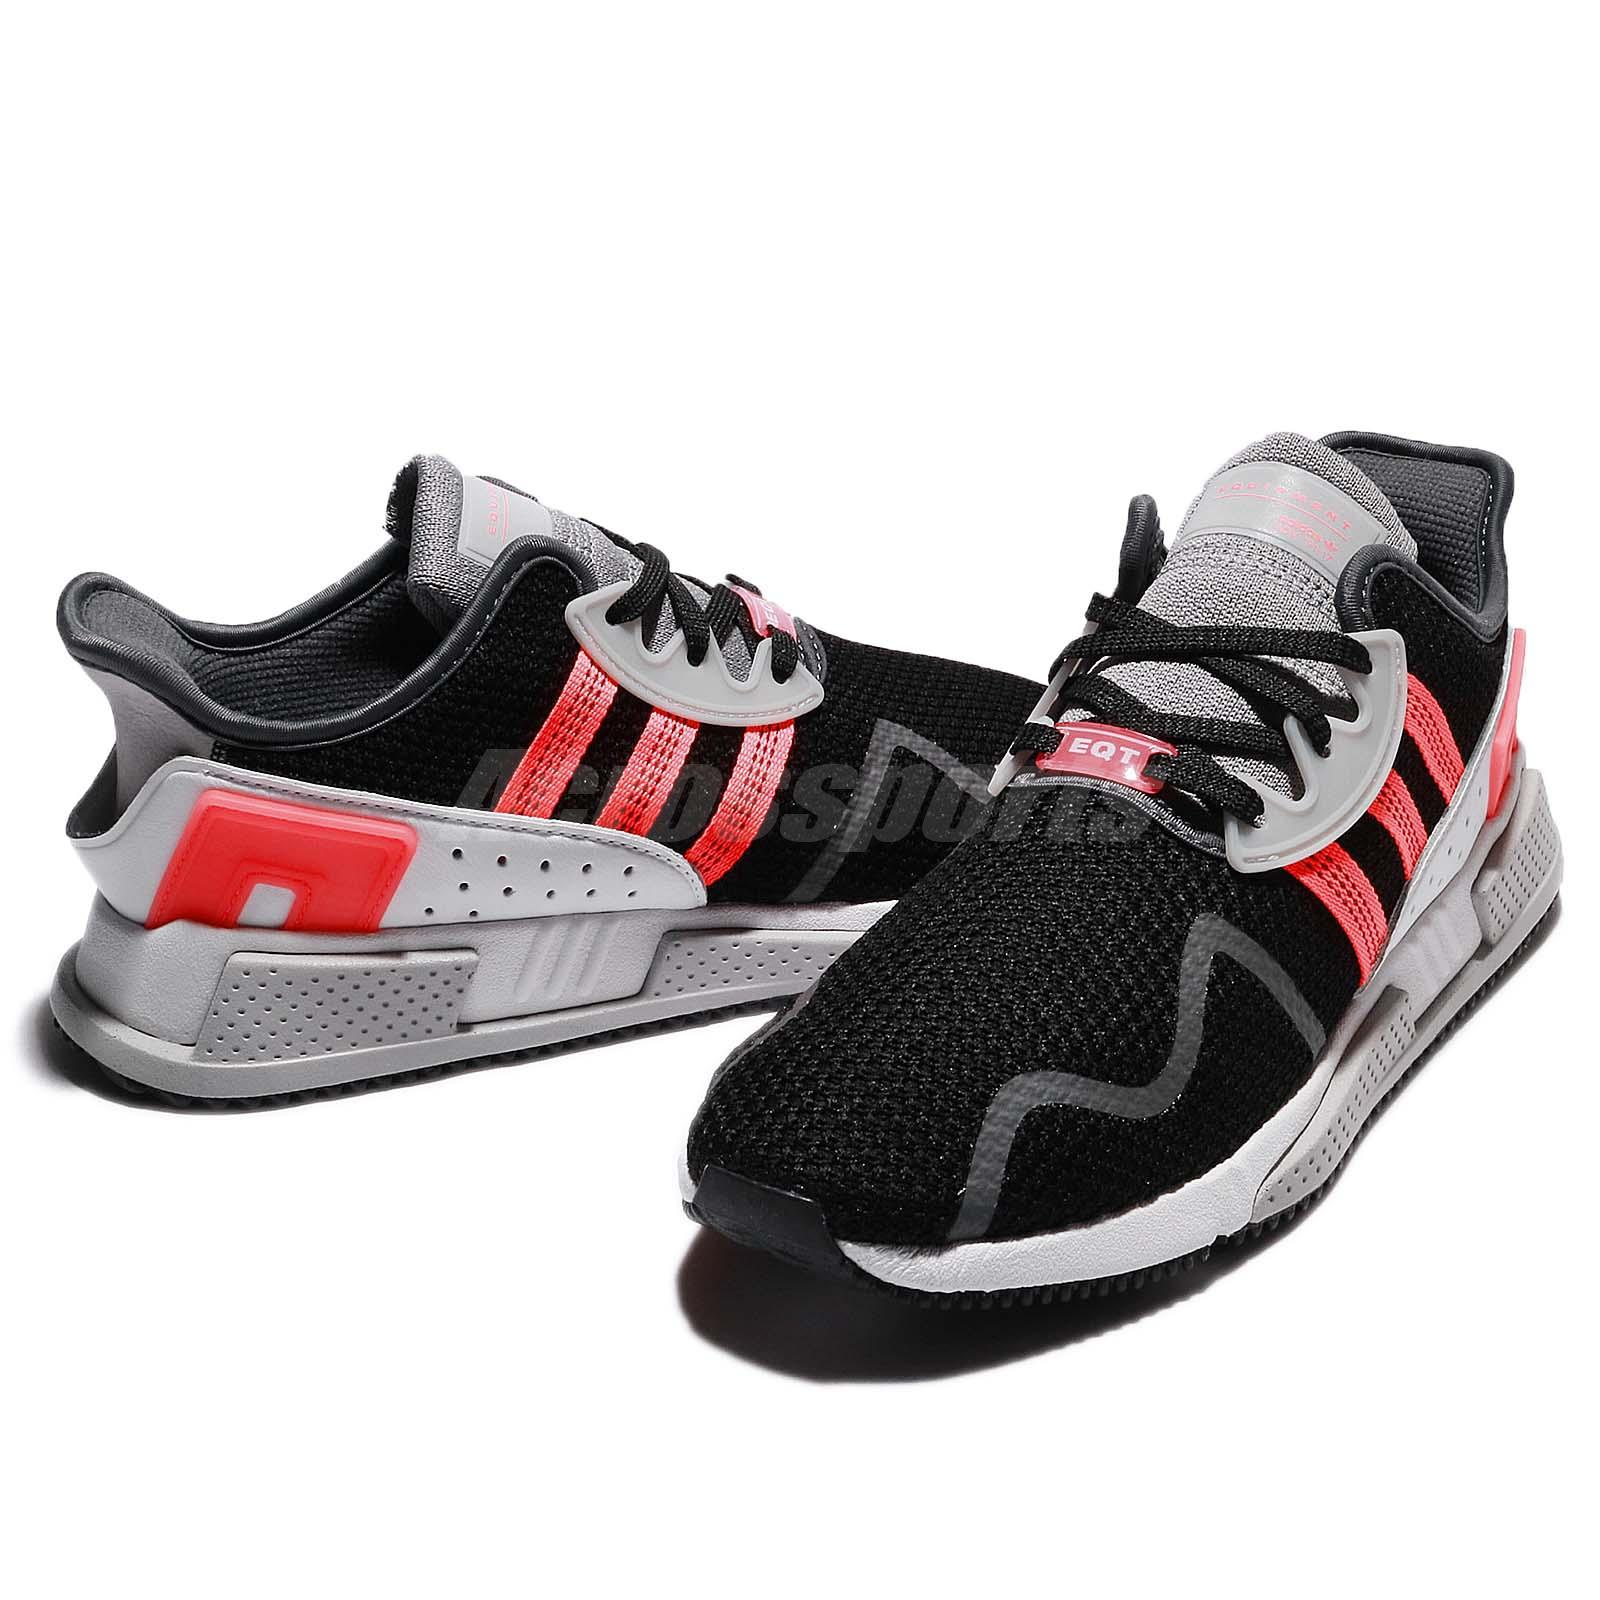 adidas shoes 00351 country 622007